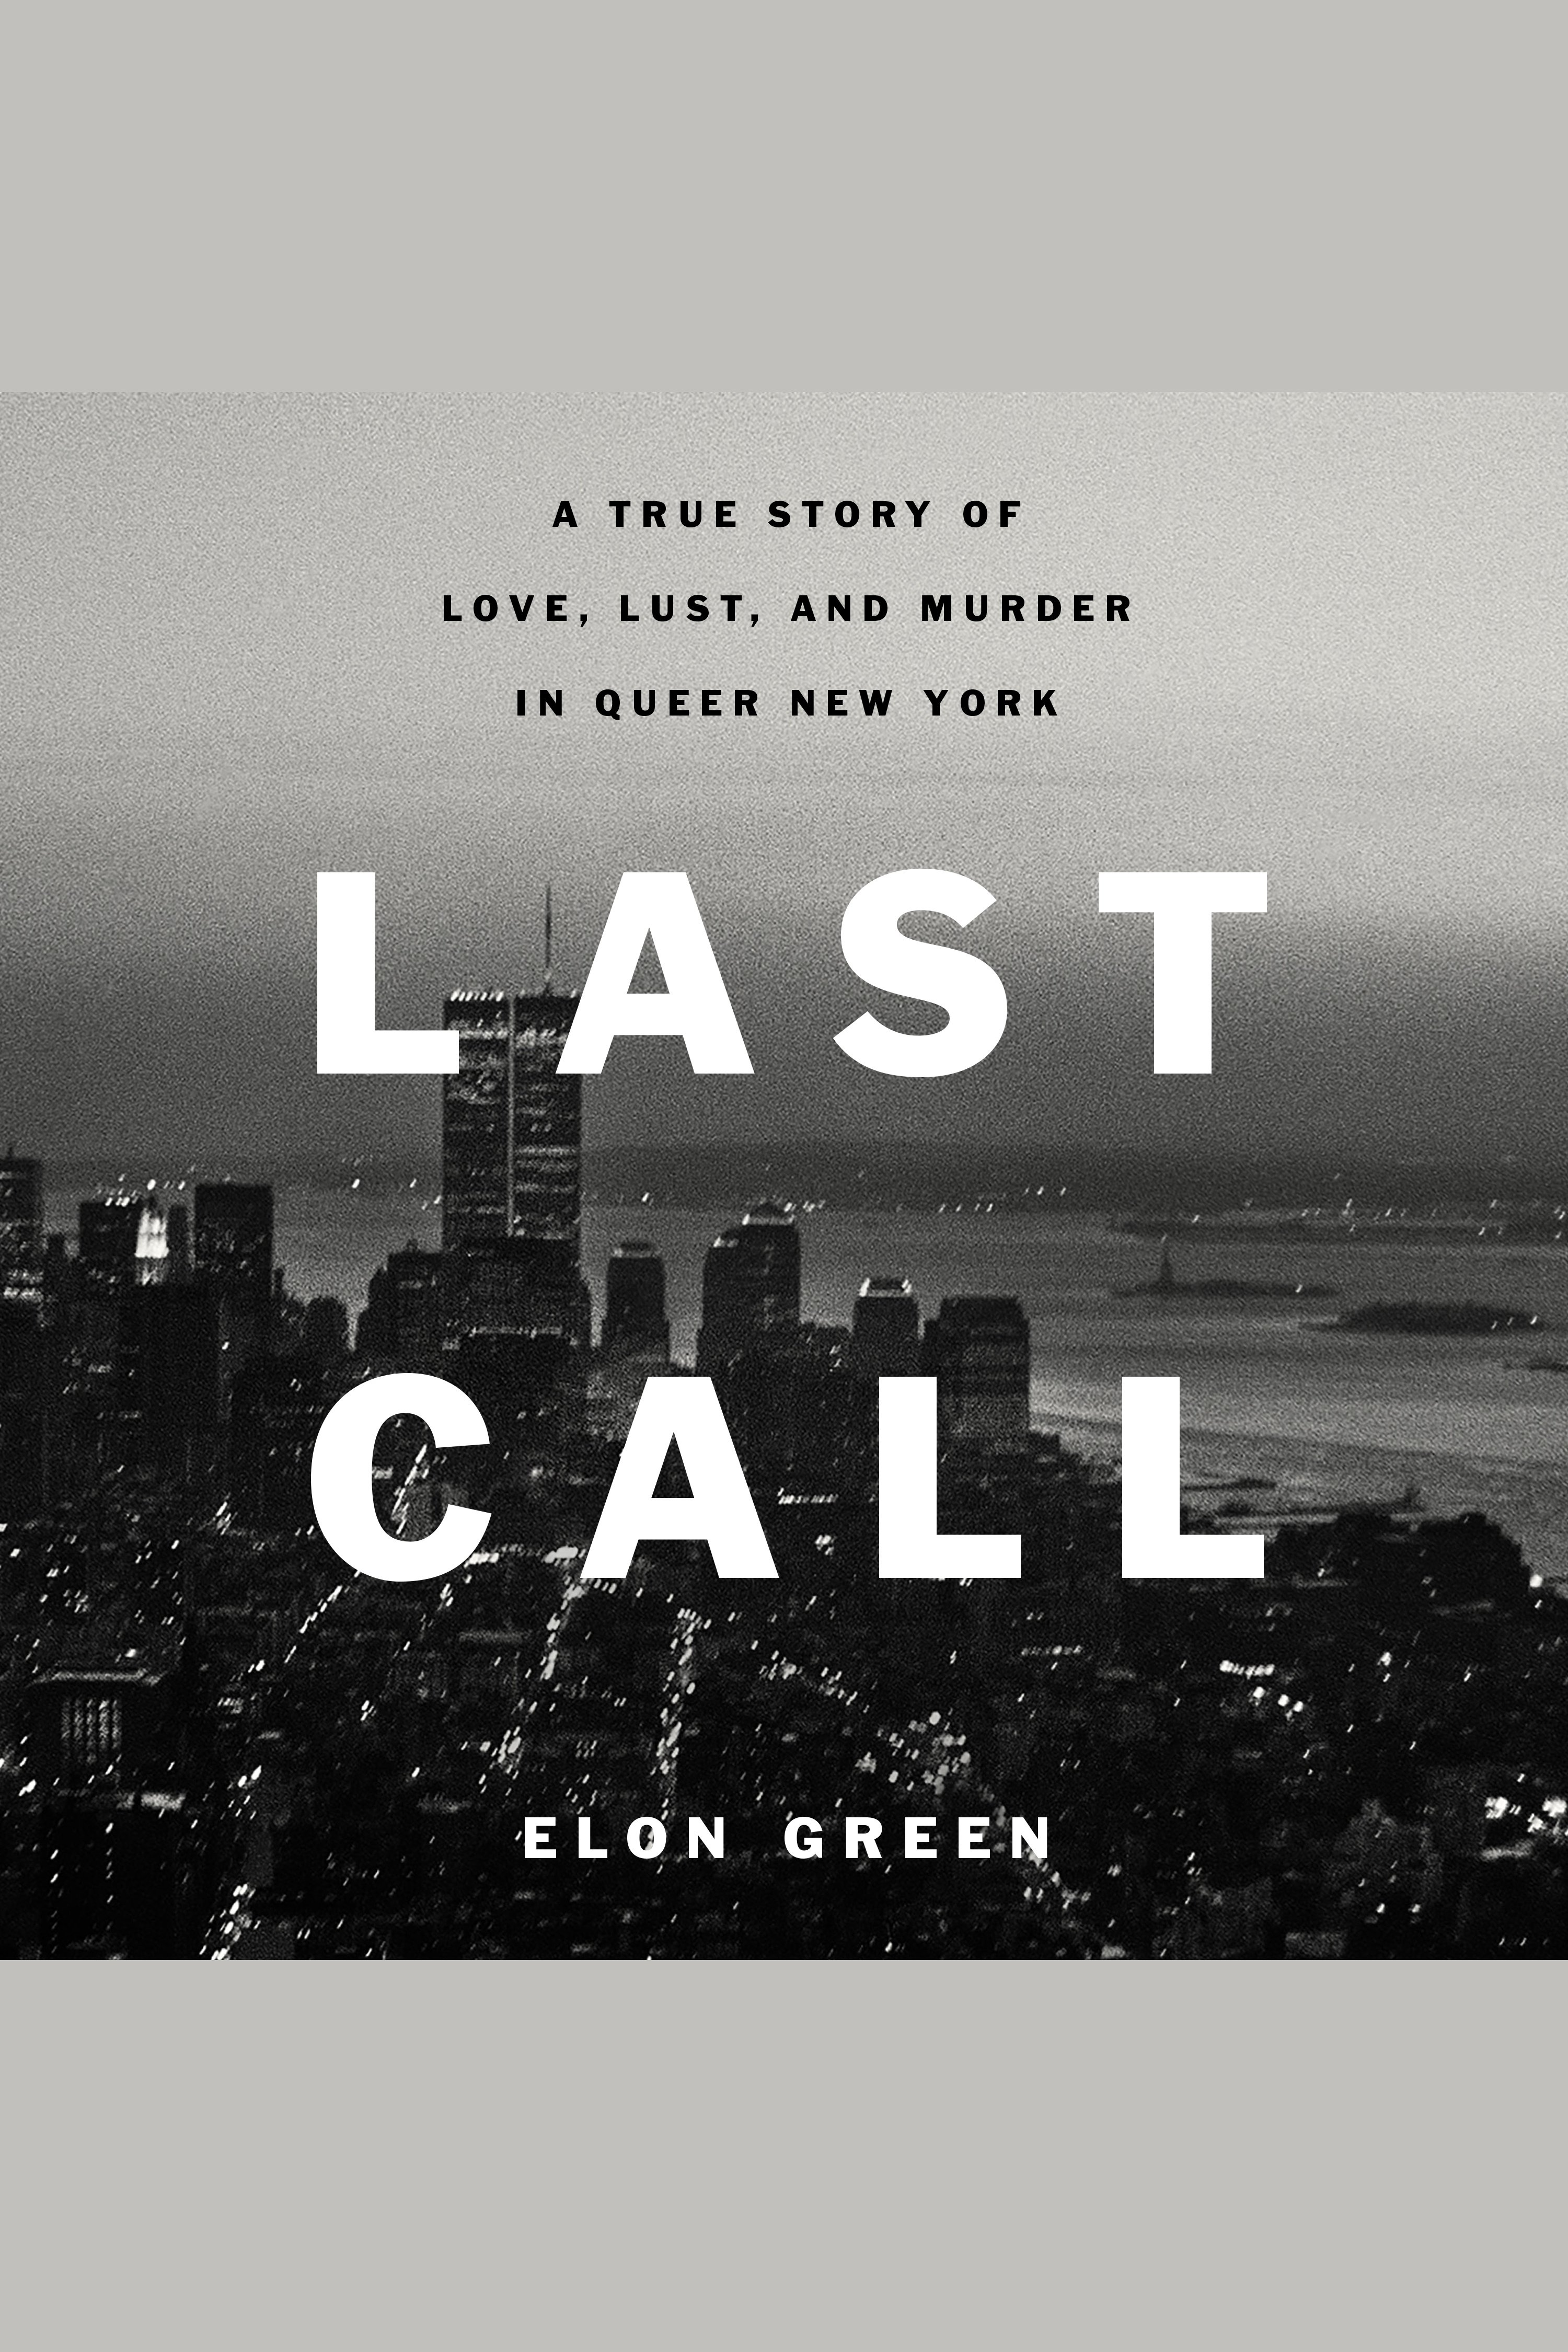 Last Call A True Story of Love, Lust, and Murder in Queer New York